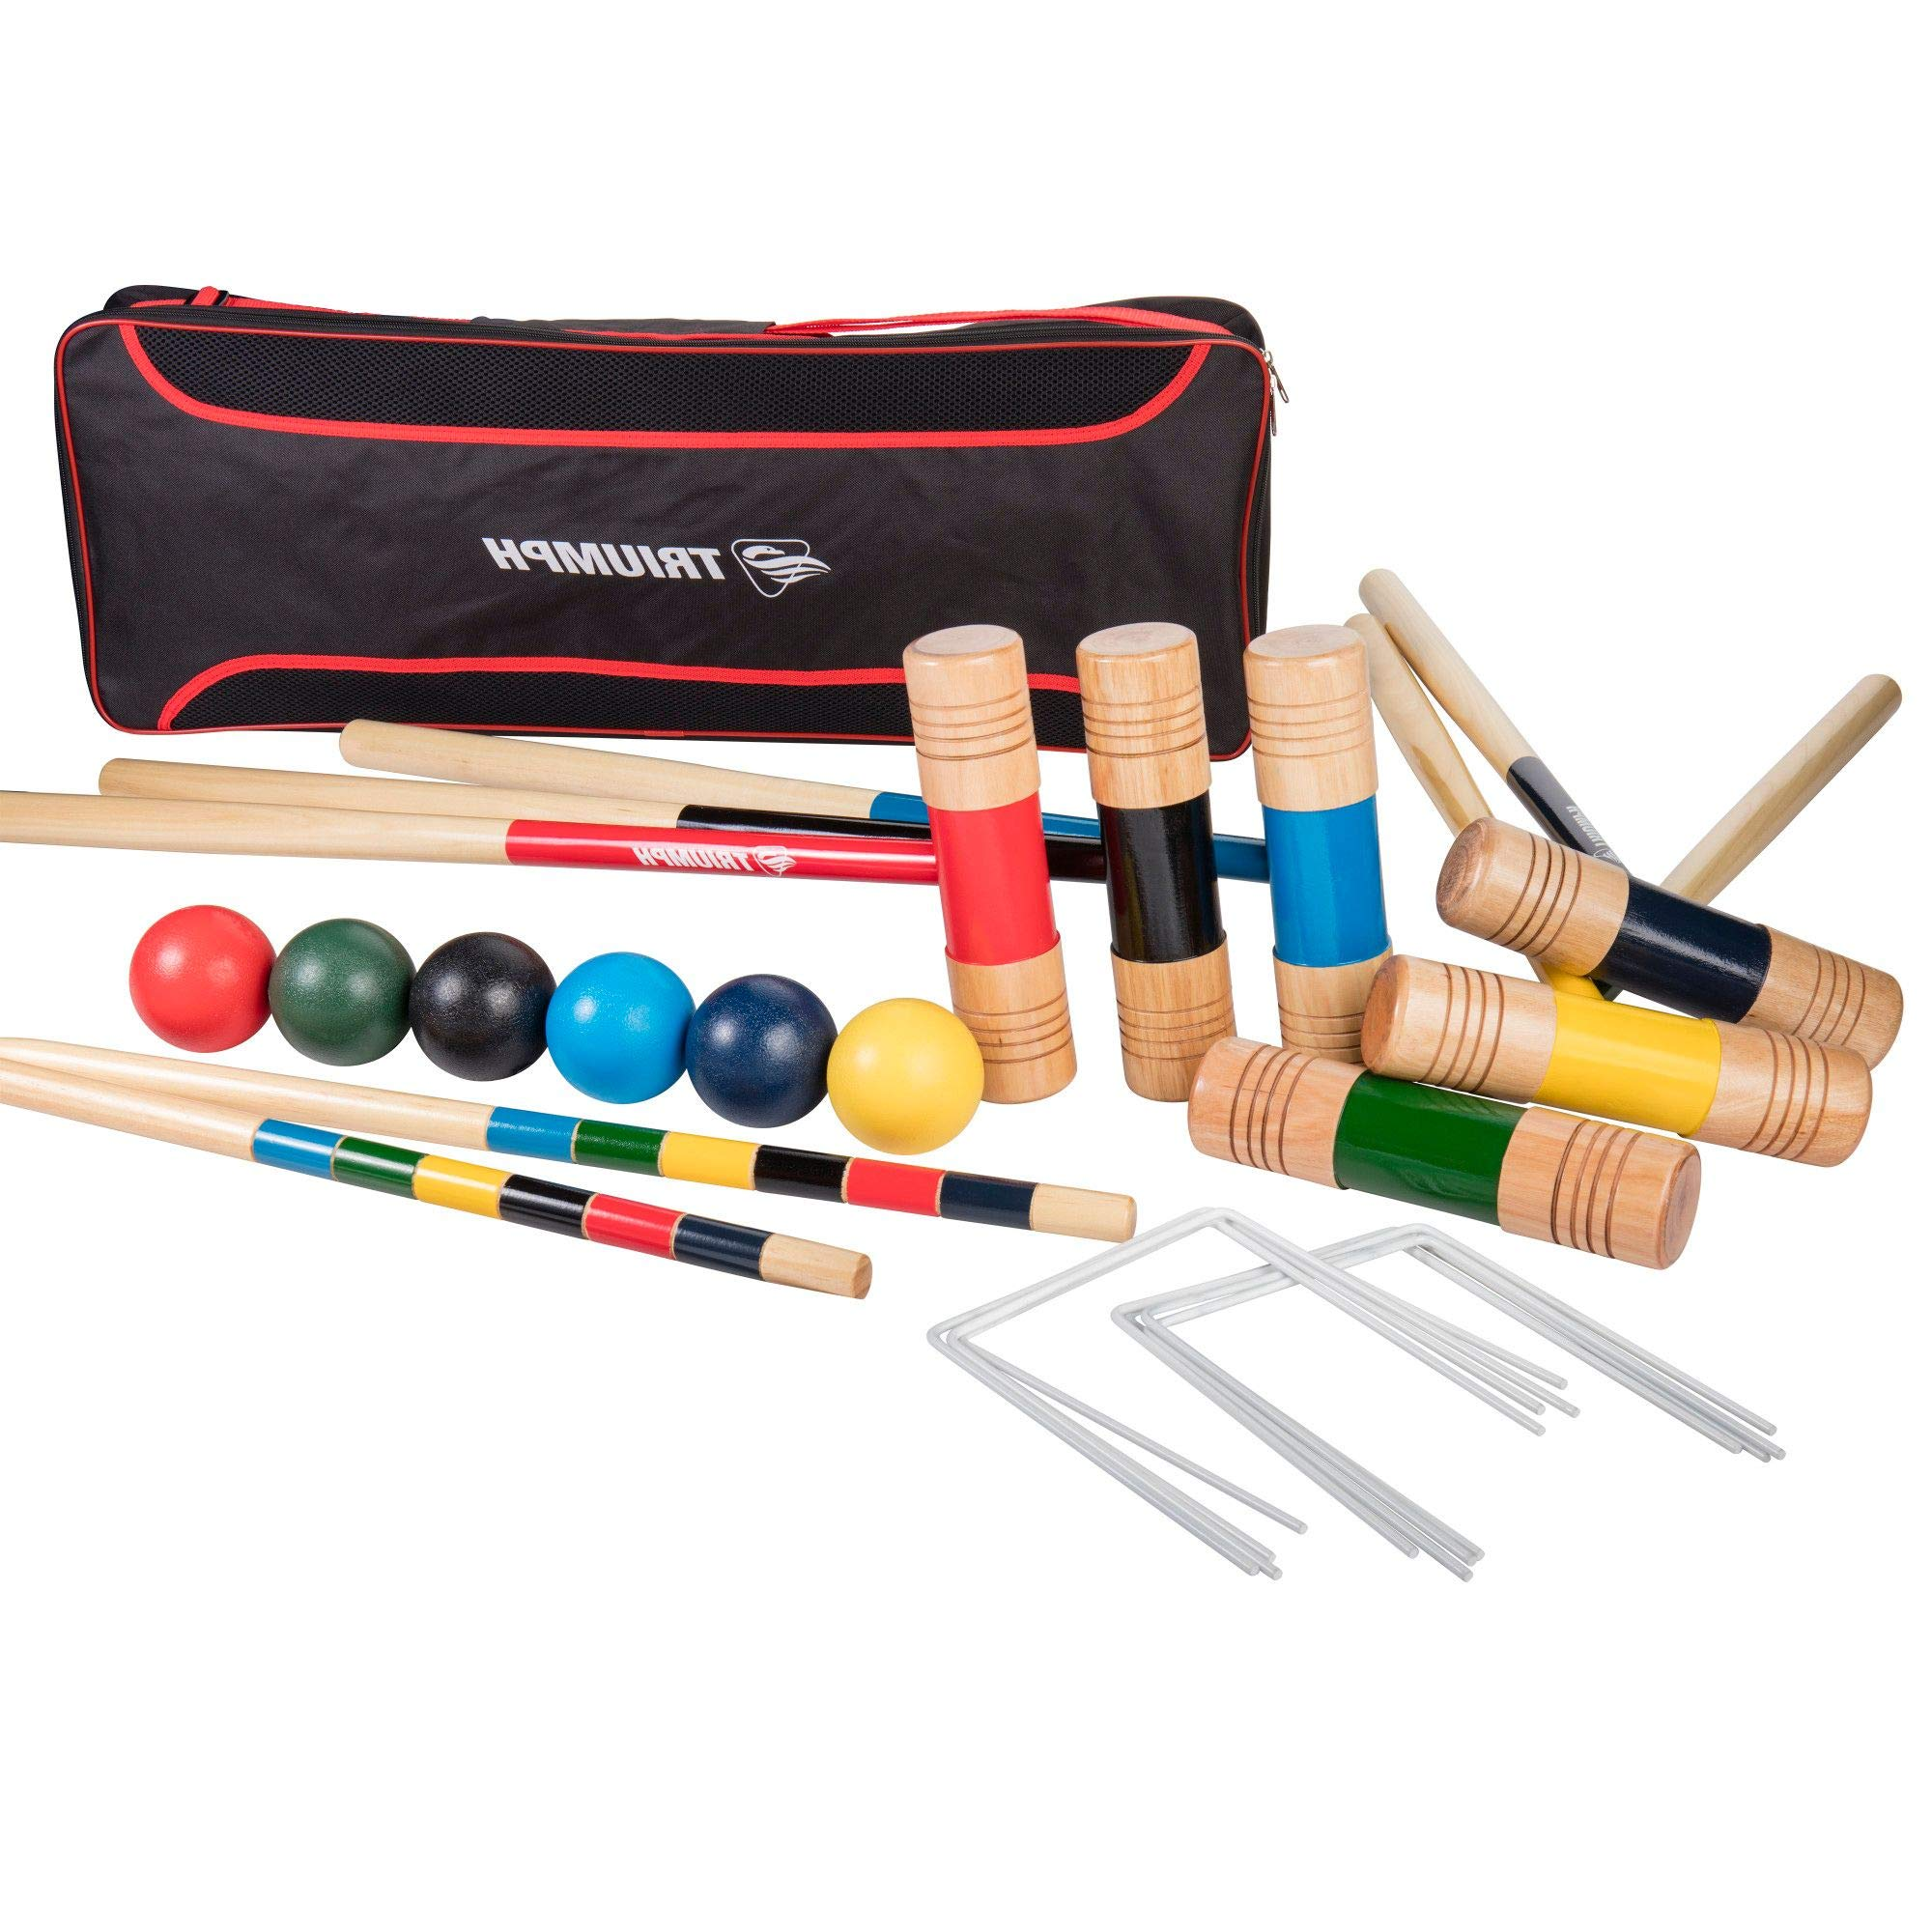 HealthyBells 6-Player All Pro Backyard Croquet Set with 6 Wood Mallets, Balls, and Carry Bag